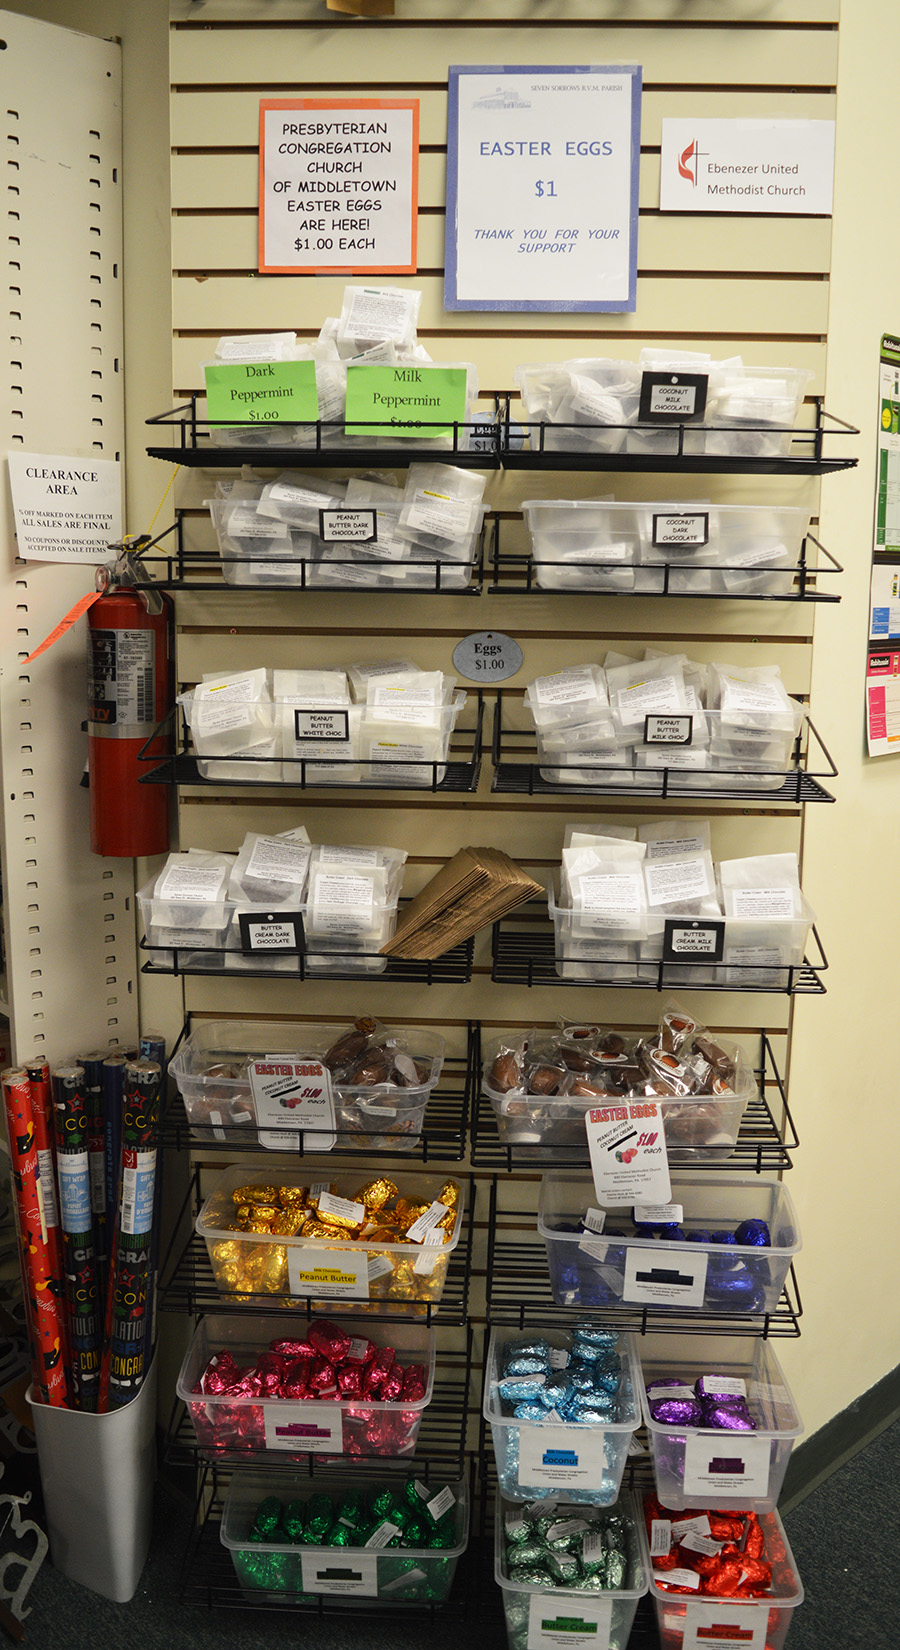 Middletown Pharmacy & Gifts seasonal wire rack wall display of chocolate eggs made by area church groups and variably presented in small labeled plastic bags or foil-wrapped in a spectrum of Easter colors. The top four rows are from Seven Sorrows Church, the middle row is from Presbyterian Congregation of Middletown Church. and the bottom three rows are from Ebenezer United Method Church. Each bin holds a different variety of chocolate egg. Middletown, March 12, 2016. Photo: Mira Johnson.